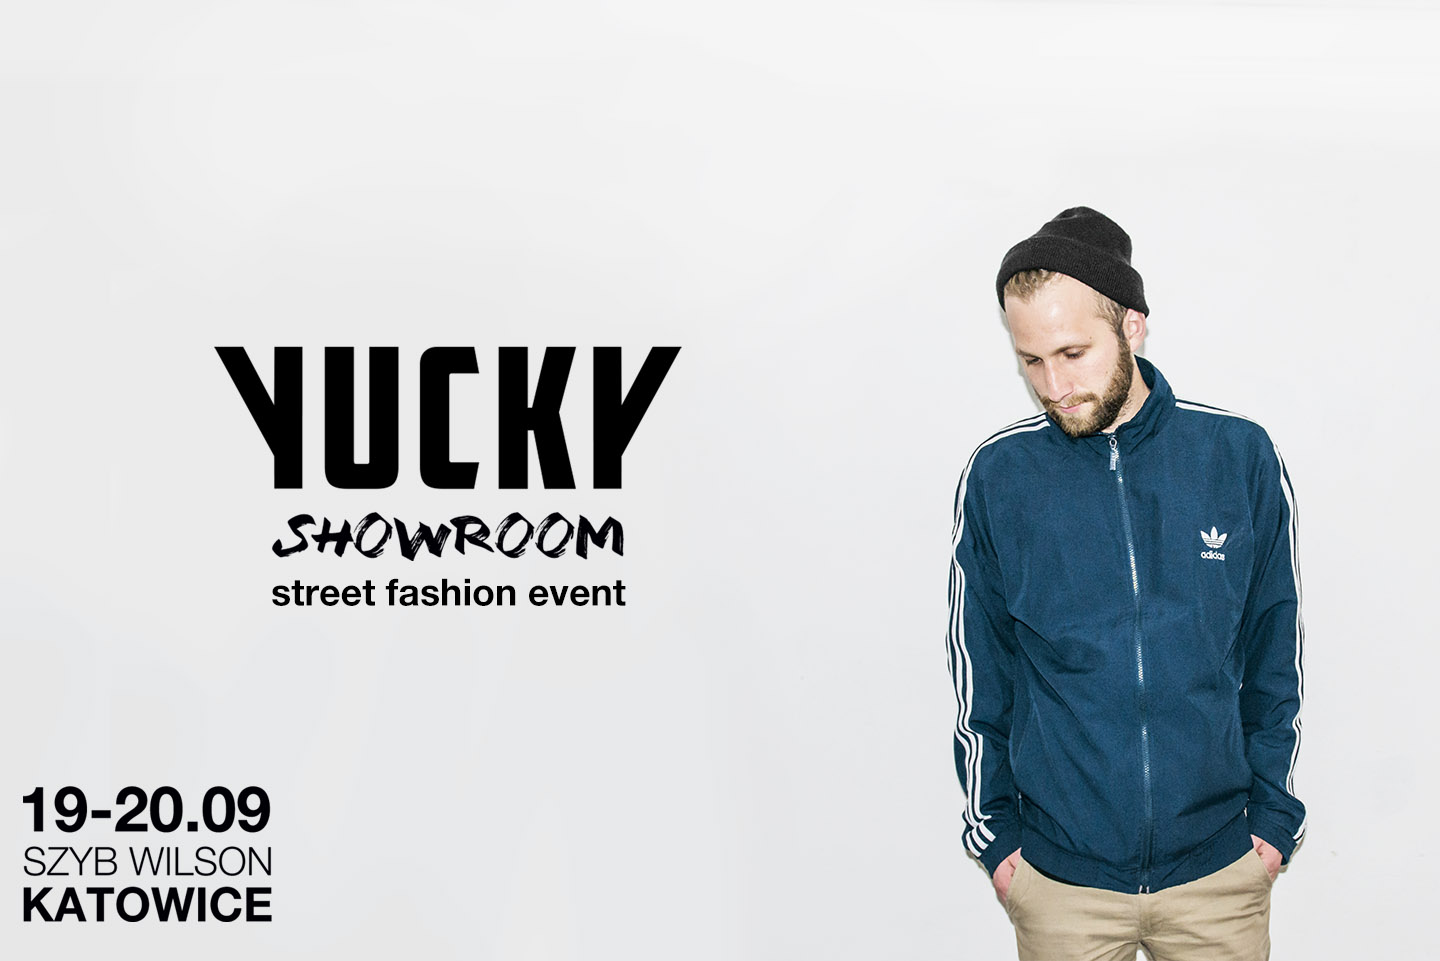 yucky showroom commercial 2